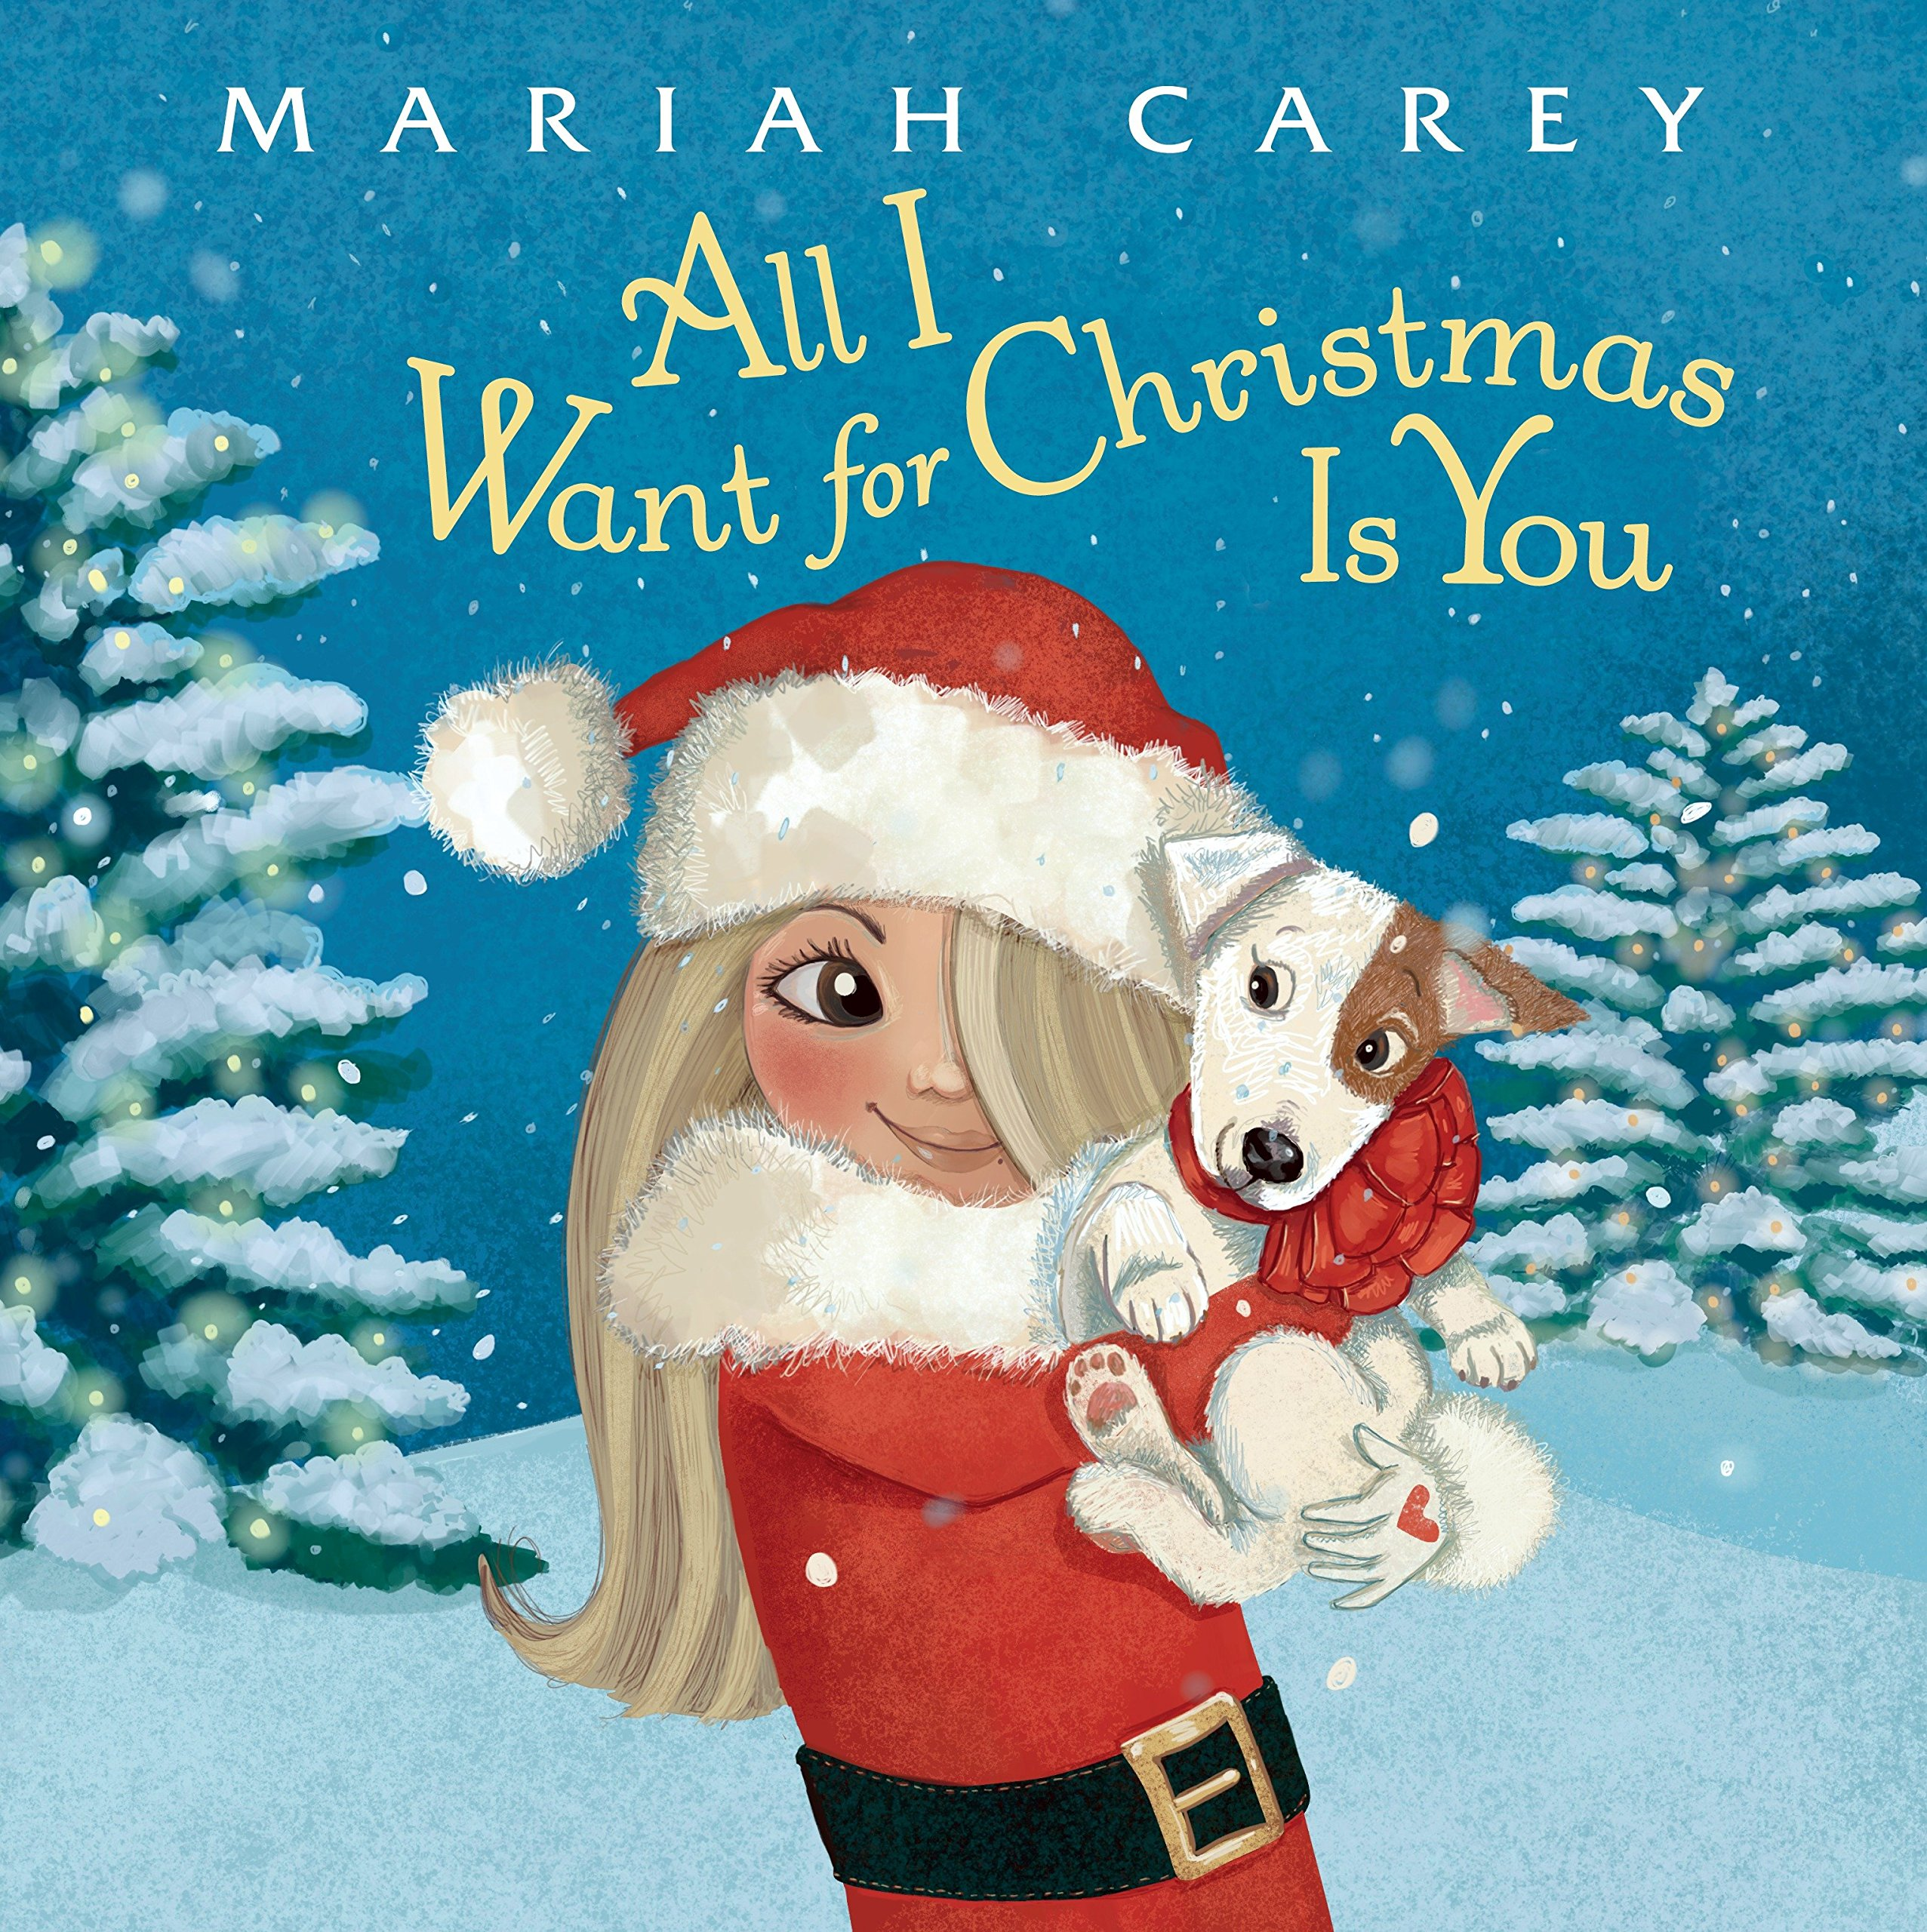 Mariah Carey All I Want For Christmas Is You Lyrics.All I Want For Christmas Is You Amazon Co Uk Mariah Carey